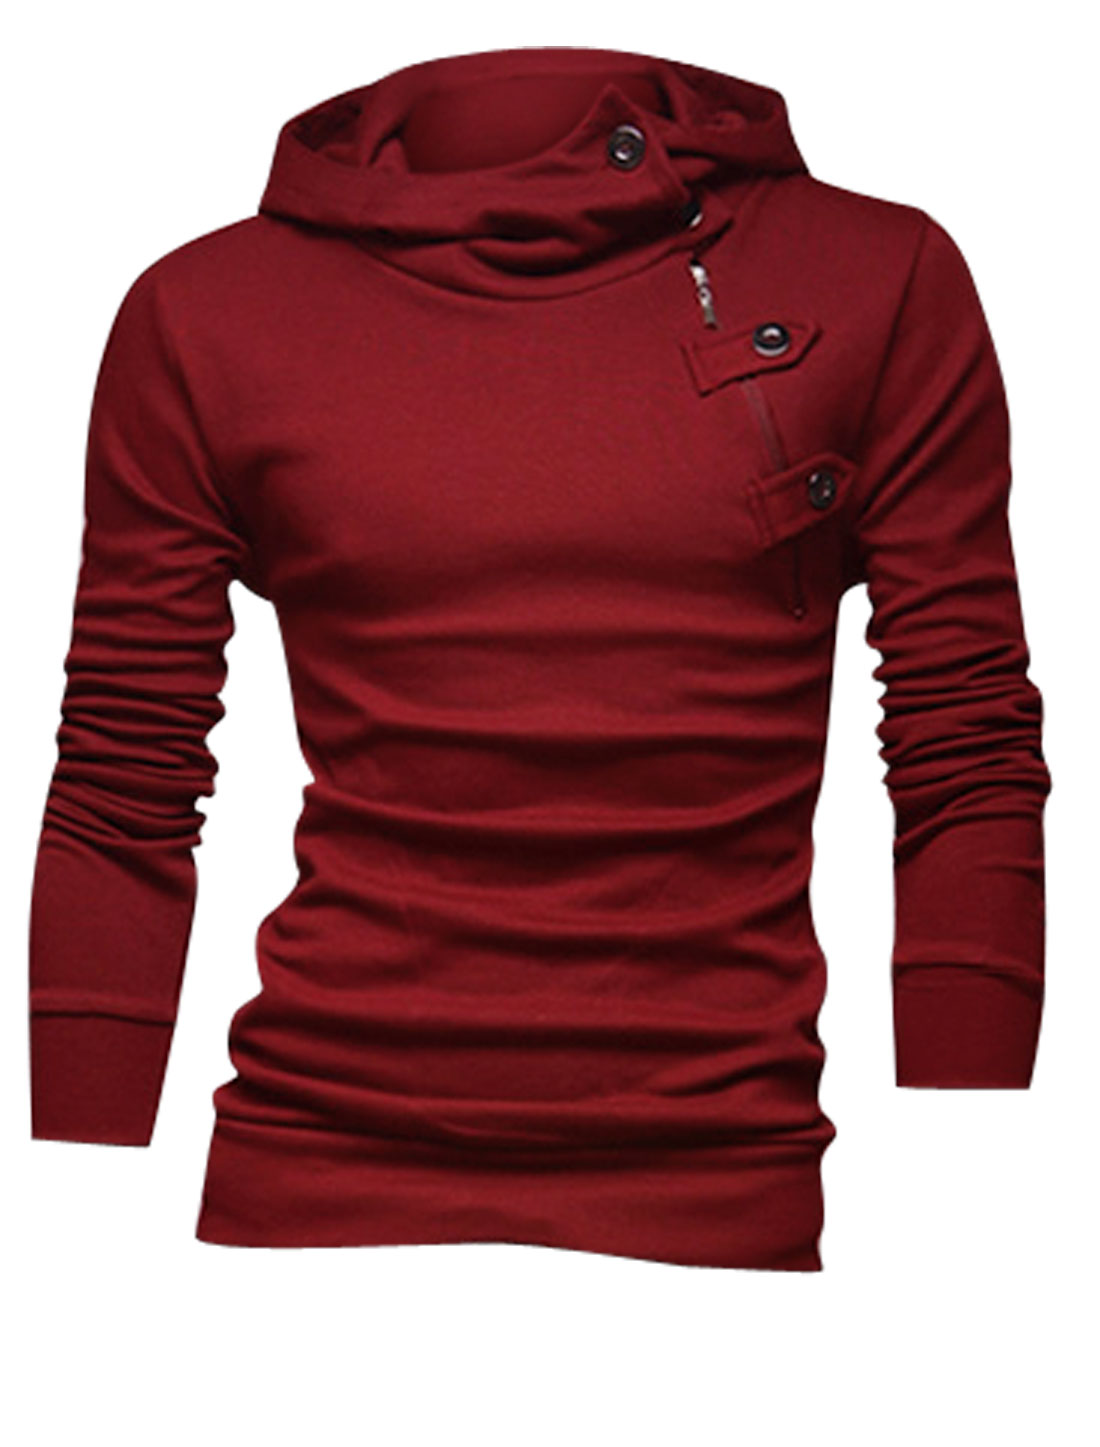 Men Two Side Pockets Button Upper Casual Hooded Sweatshirt Burgundy M